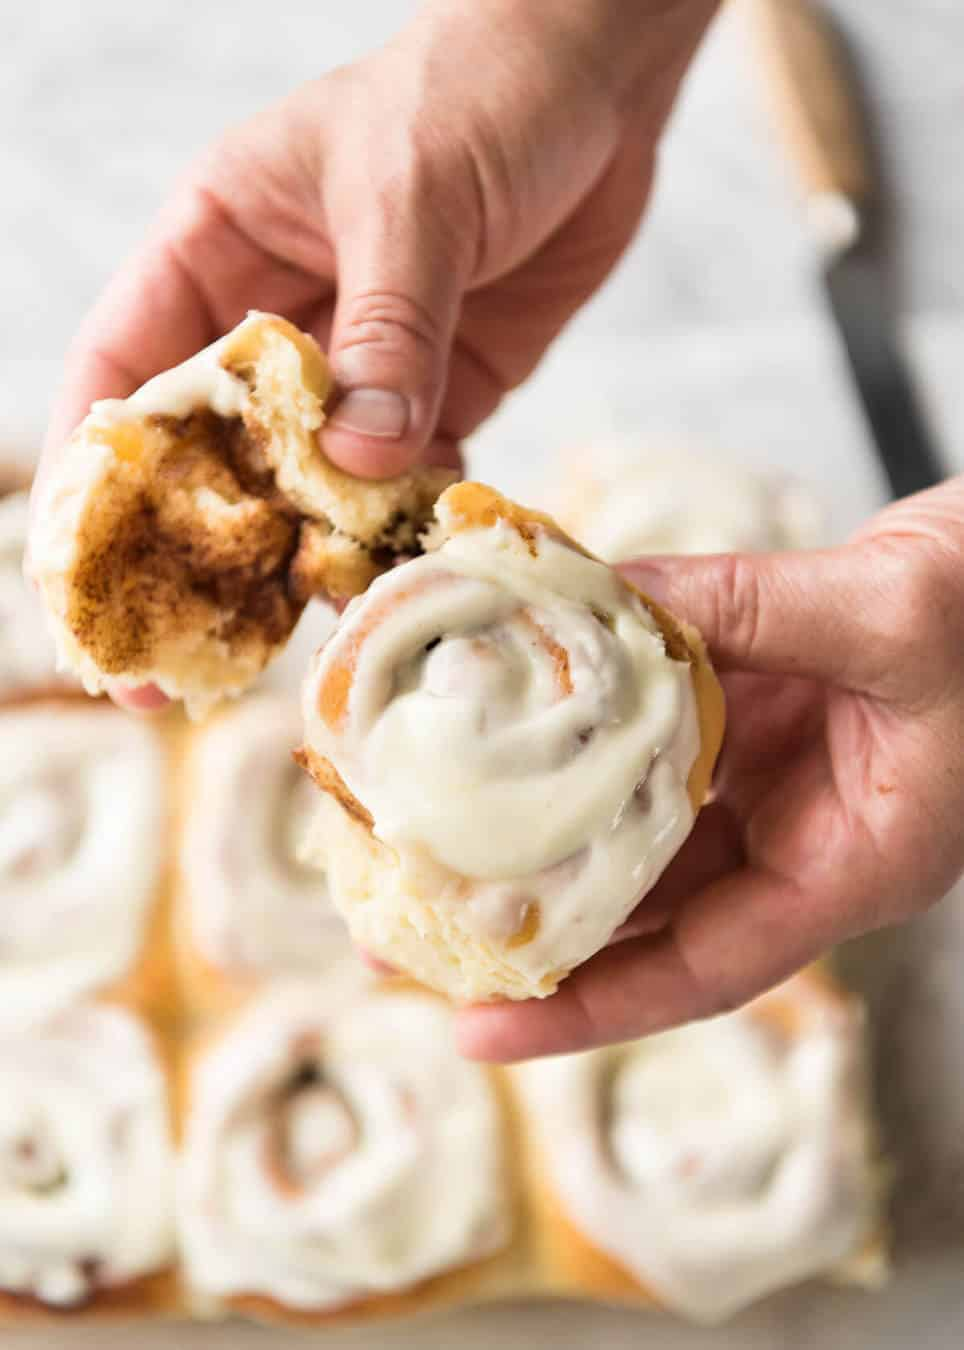 Magic No Knead Cinnamon Rolls - soft and fluffy with a cream cheese glaze! www.recipetineats.com